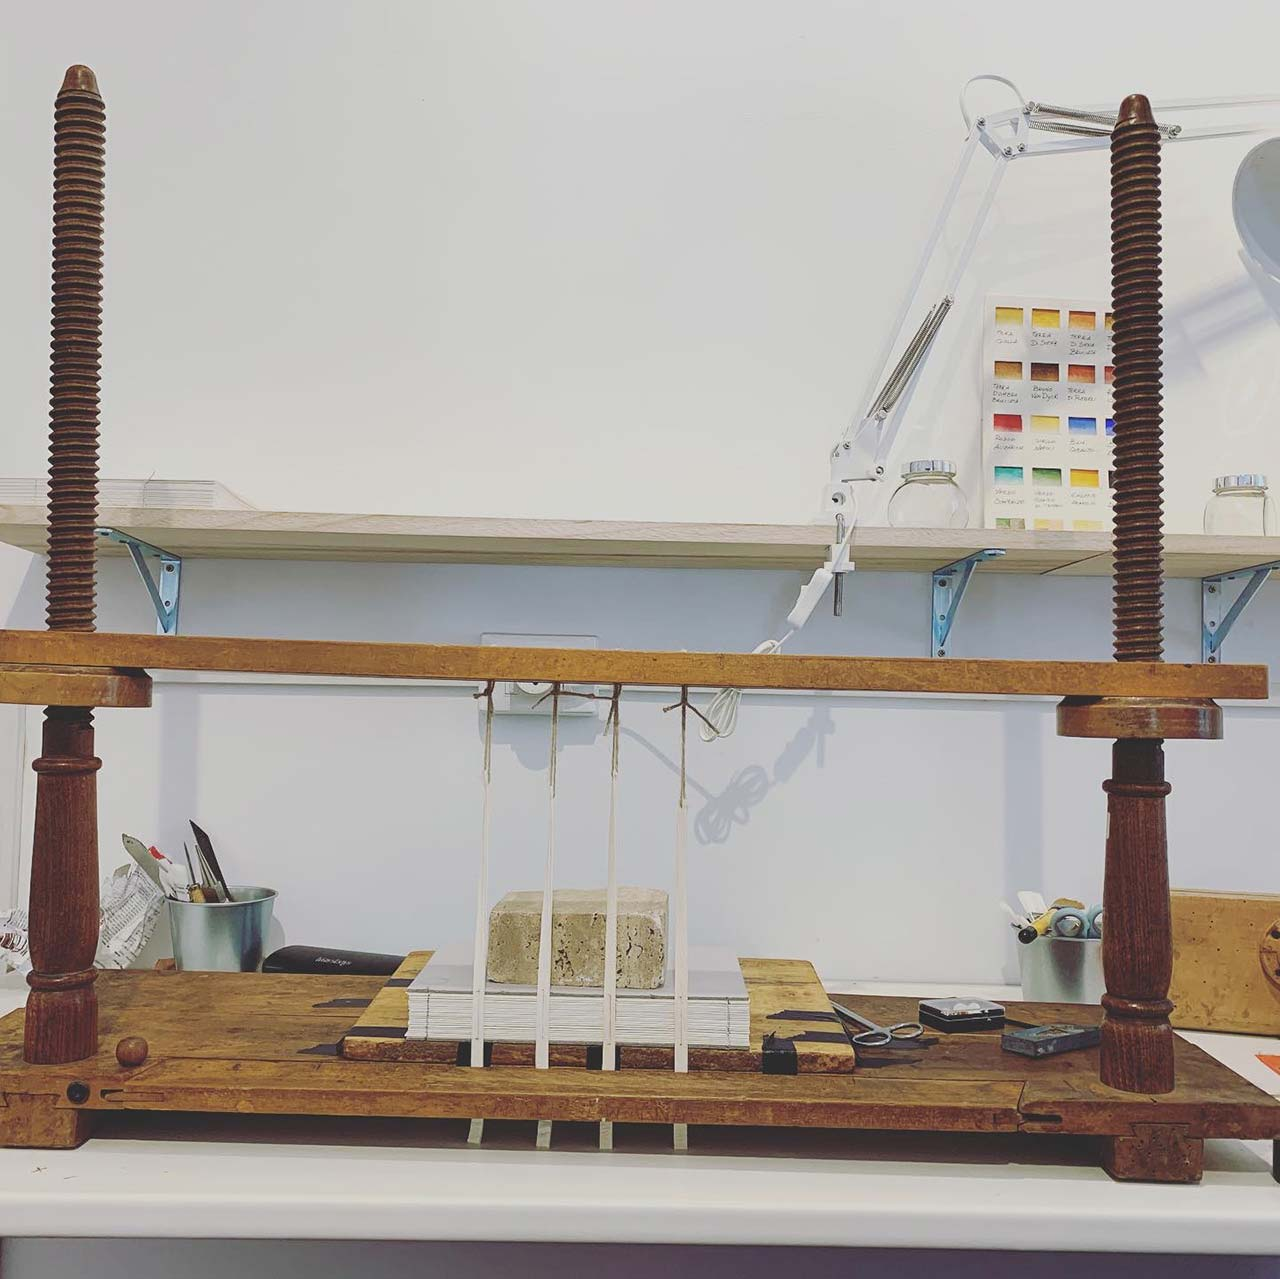 Setting up a sewing frame